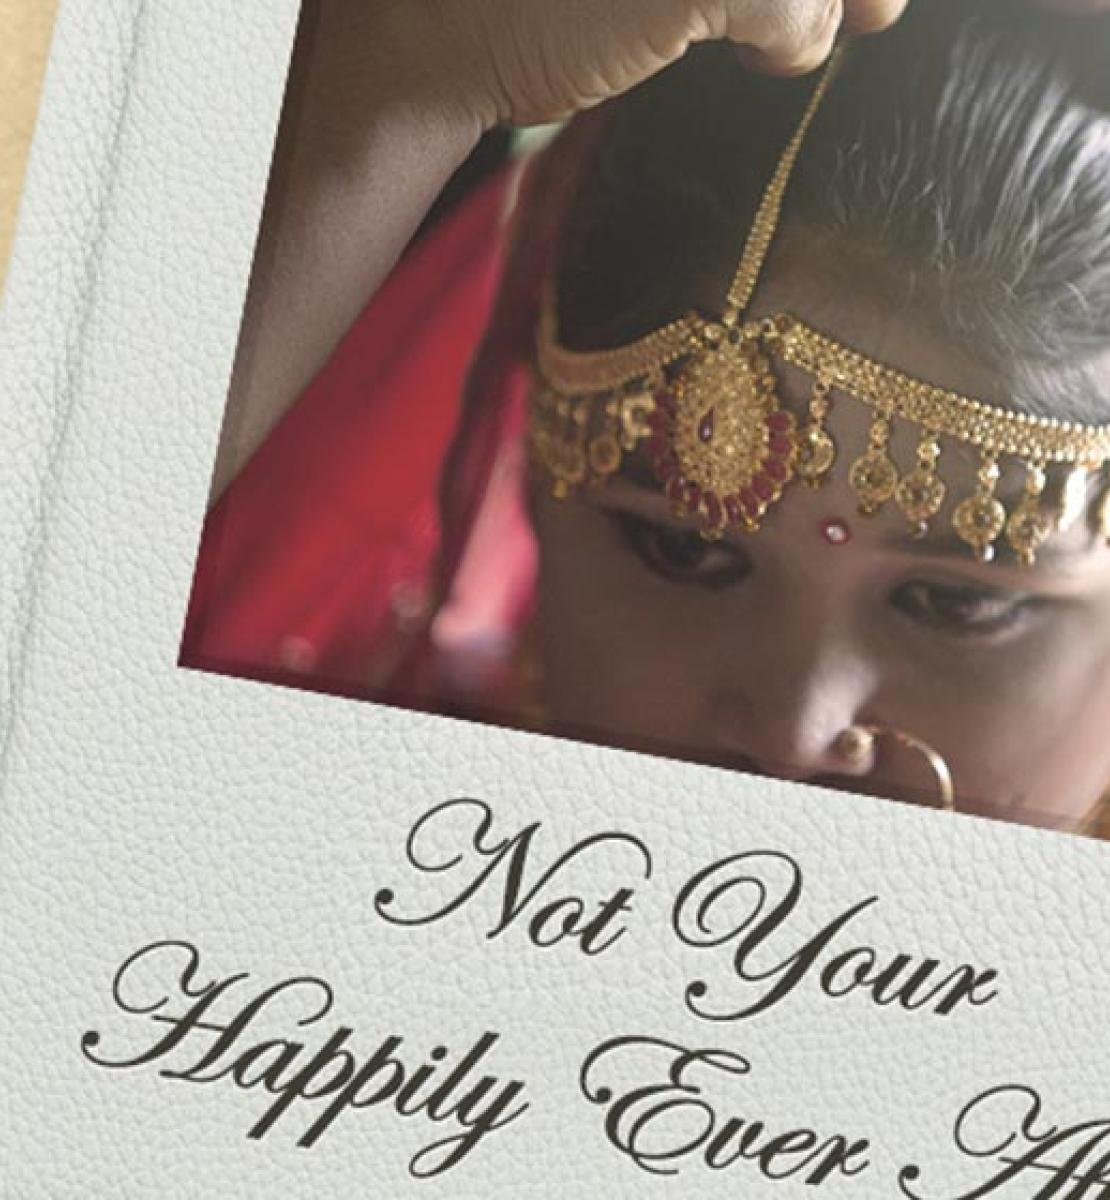 "The image shows a young girl dressed in a traditional Bangladesh cultural headdress as the cover of a wedding album, with the text ""Not Happily Ever After"" inscribed just beneath the image."